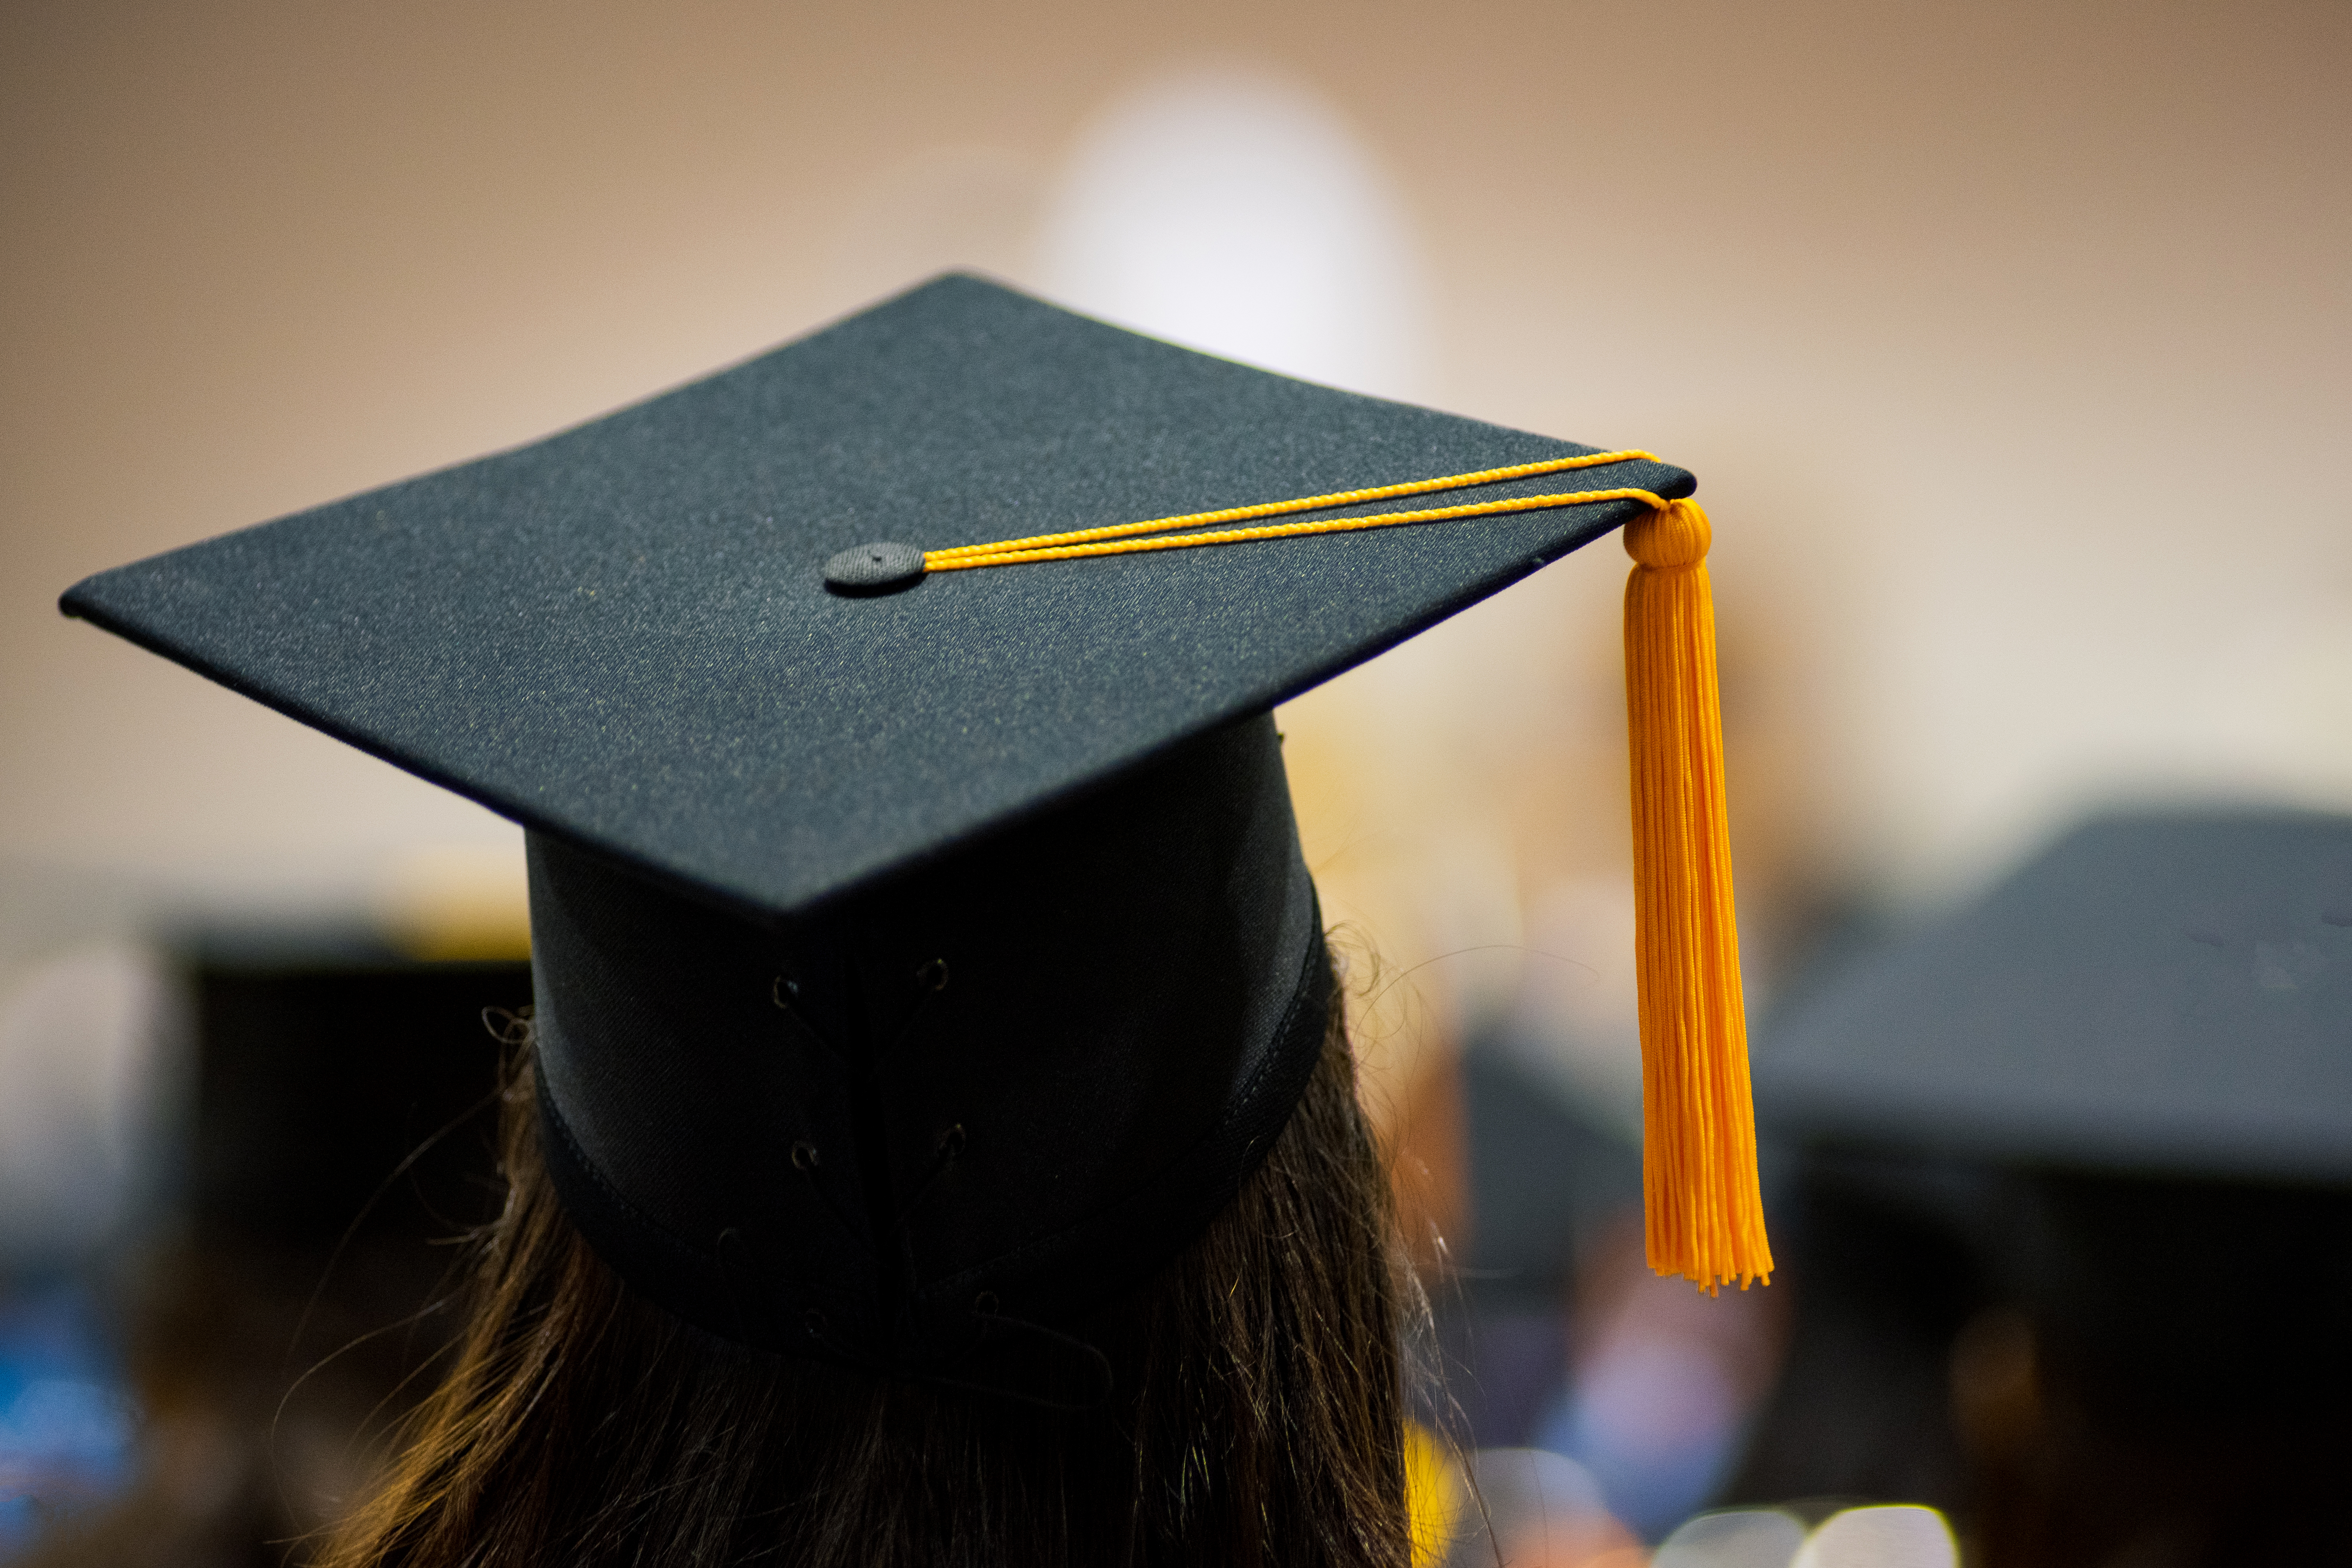 the back of the head of a woman wearing a mortarboard